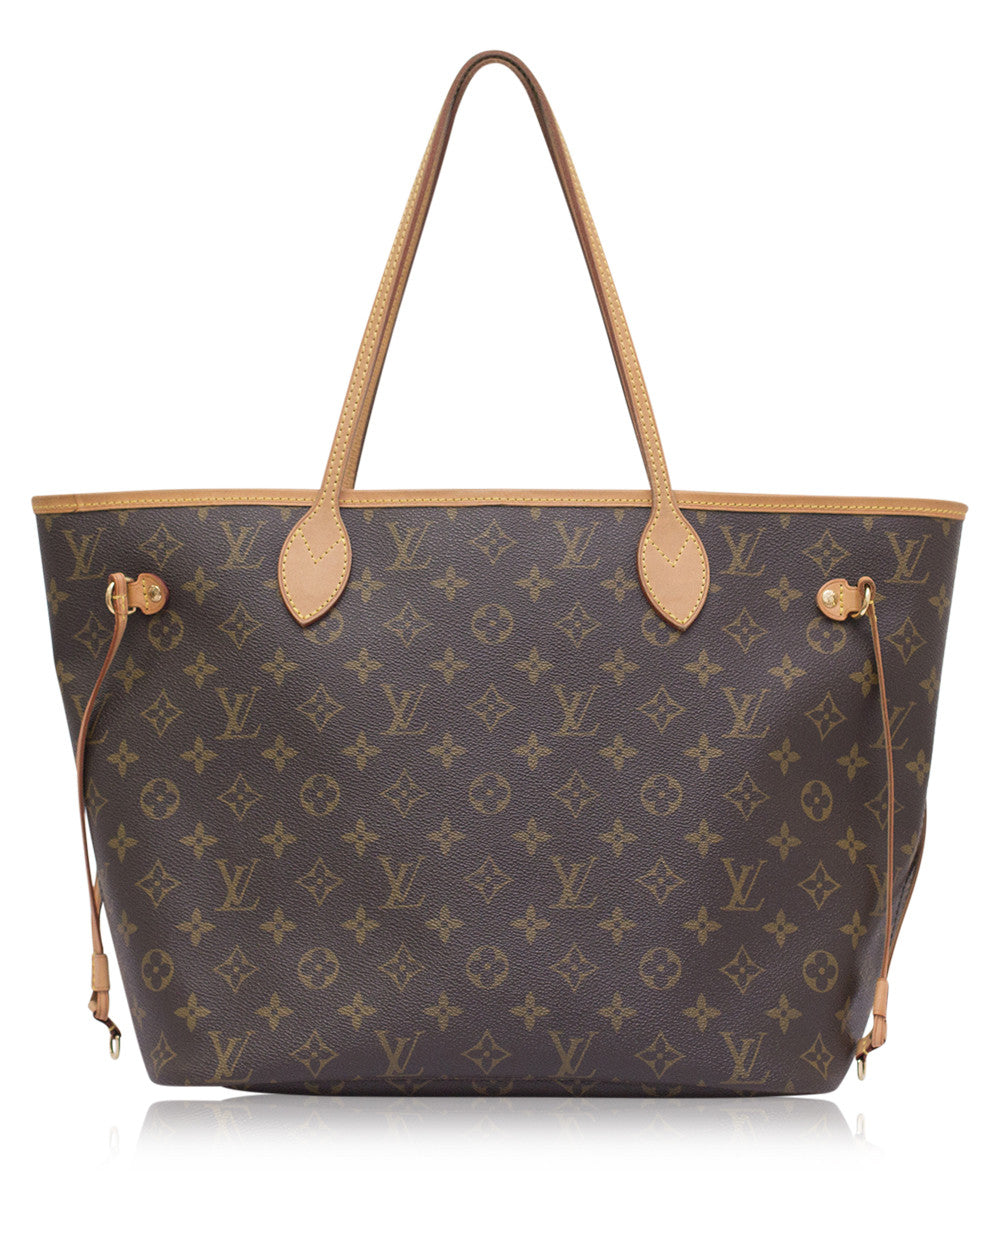 Monogram Neverfull MM Tote Bag